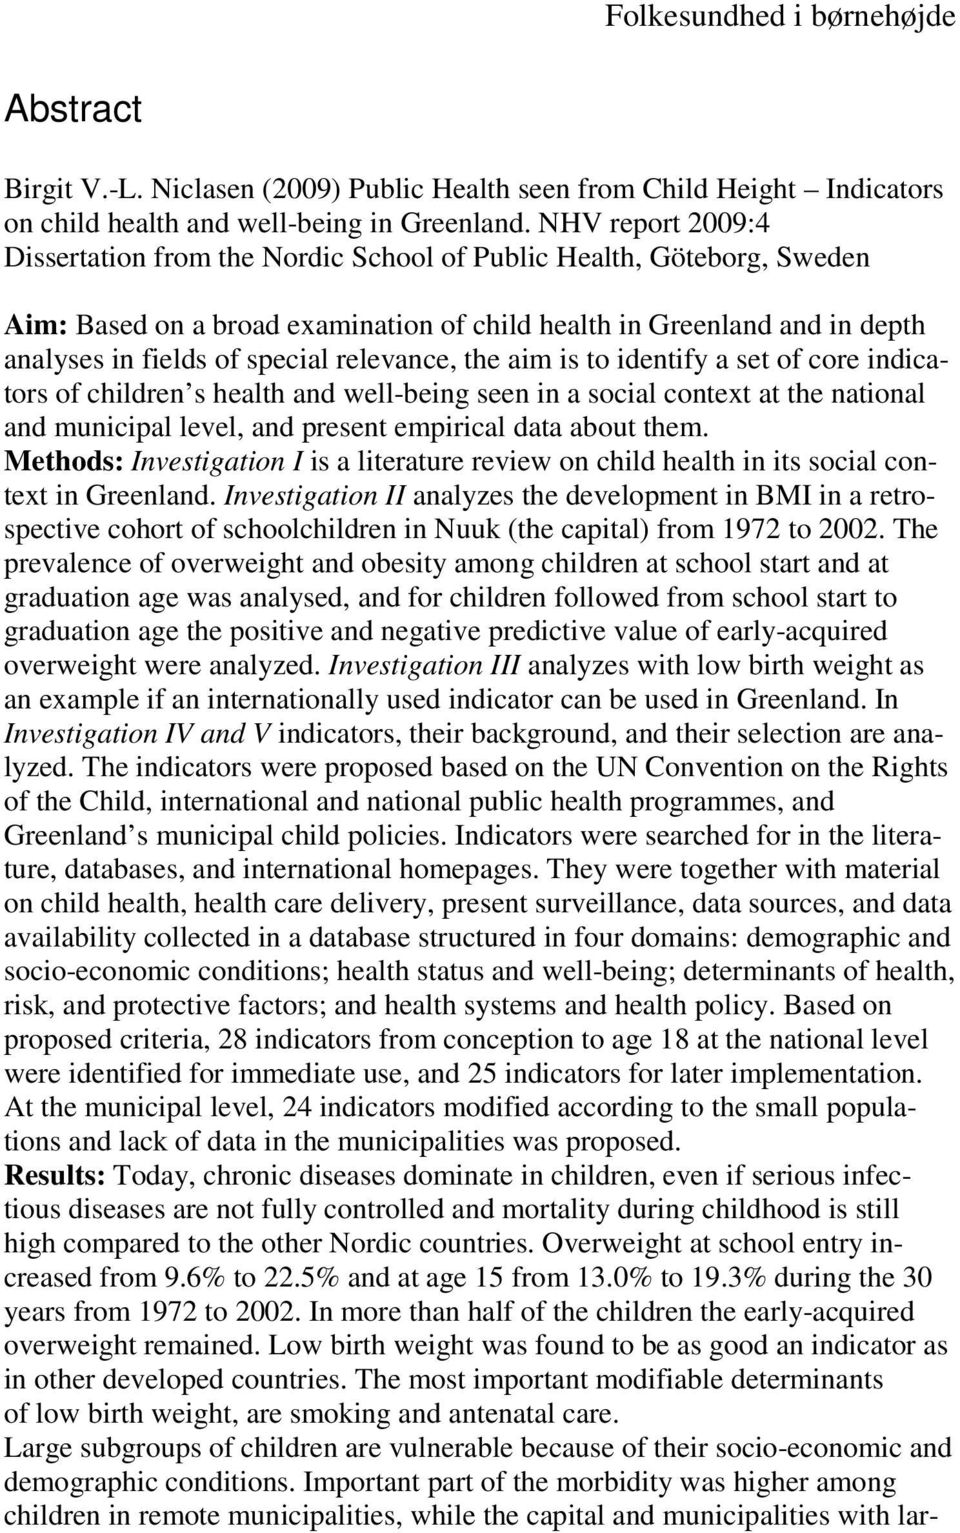 relevance, the aim is to identify a set of core indicators of children s health and well-being seen in a social context at the national and municipal level, and present empirical data about them.